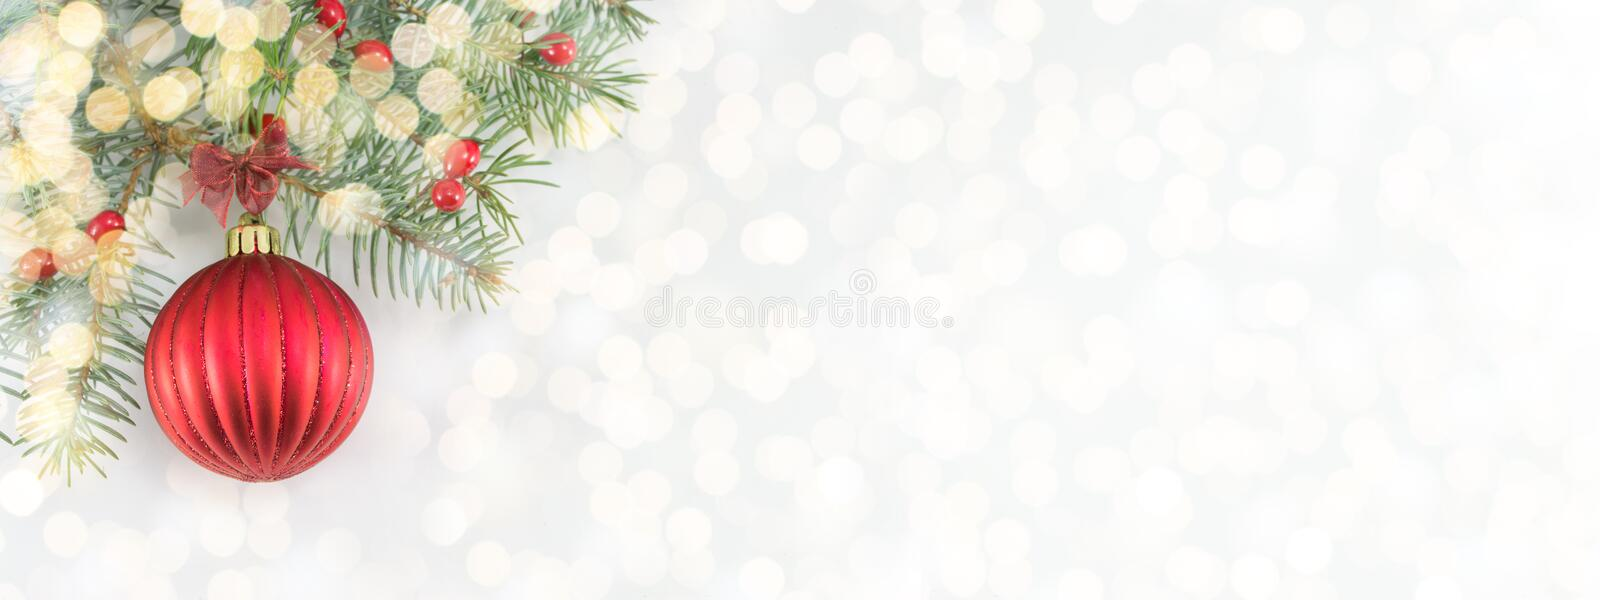 Christmas ball on shiny silver background stock images